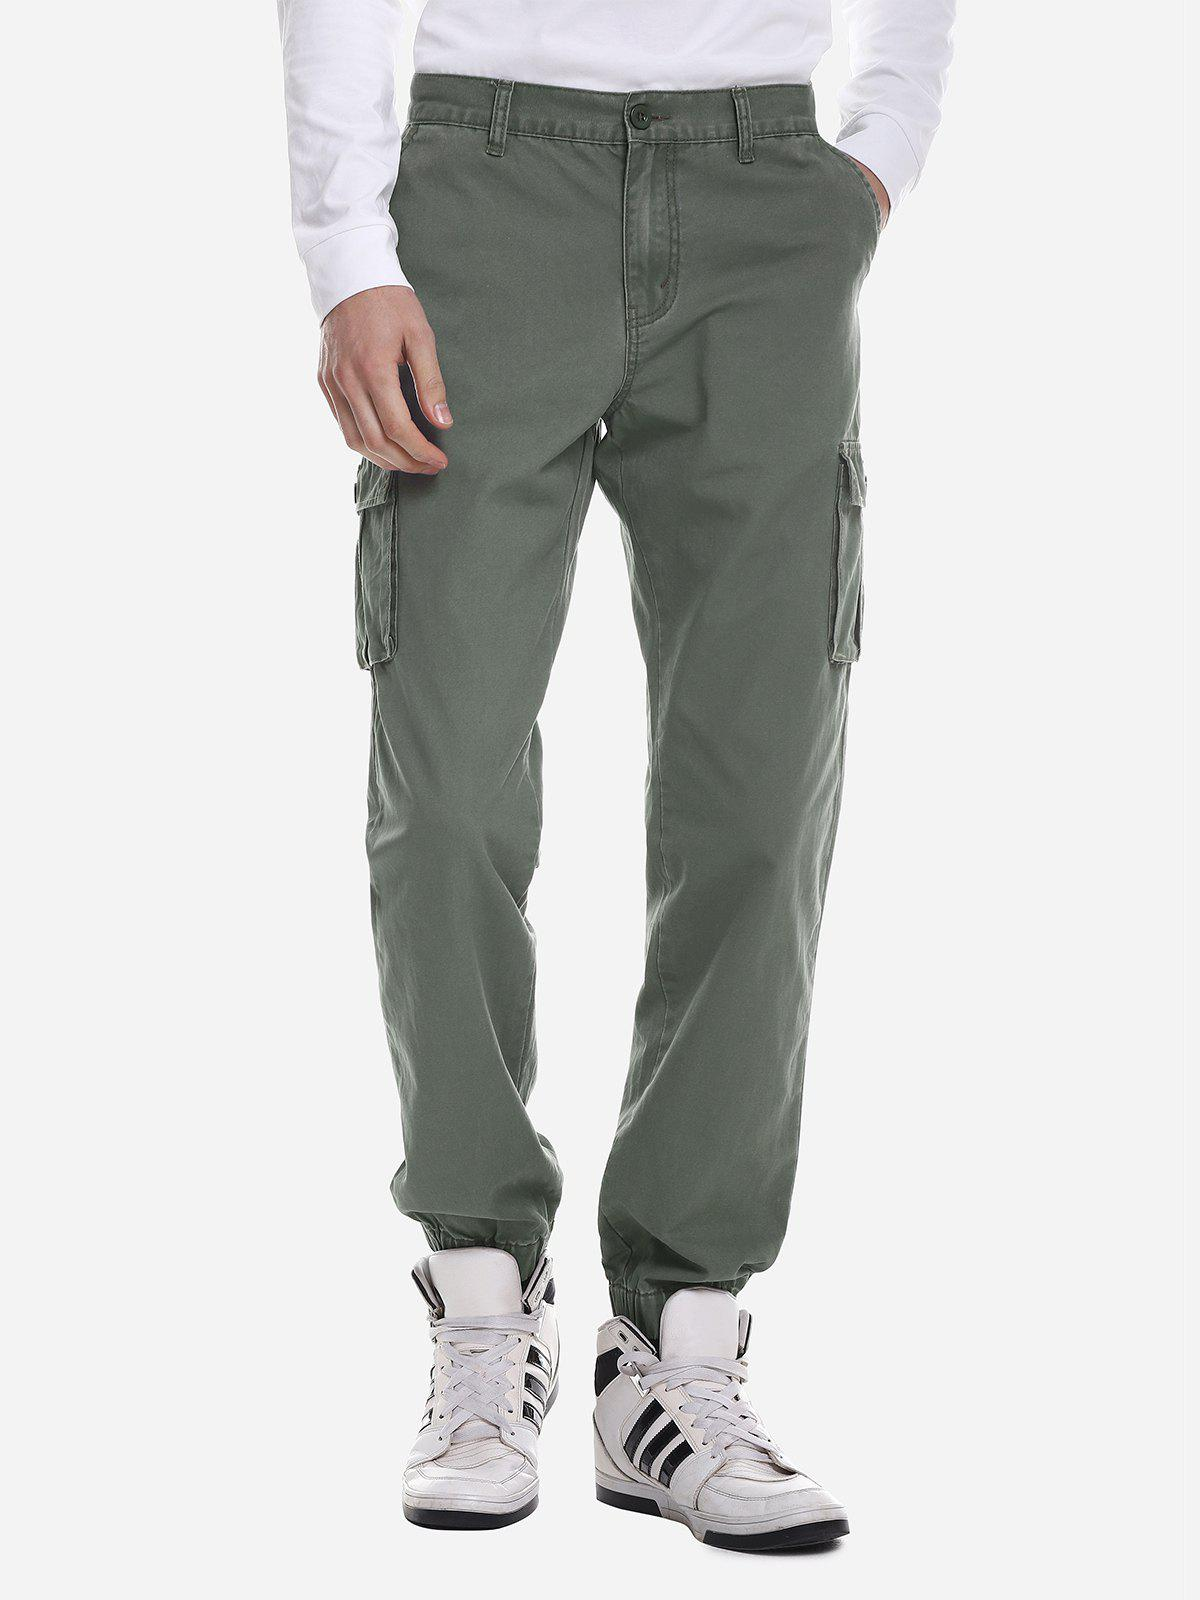 Shops ZANSTYLE Men Slim Cargo Pants